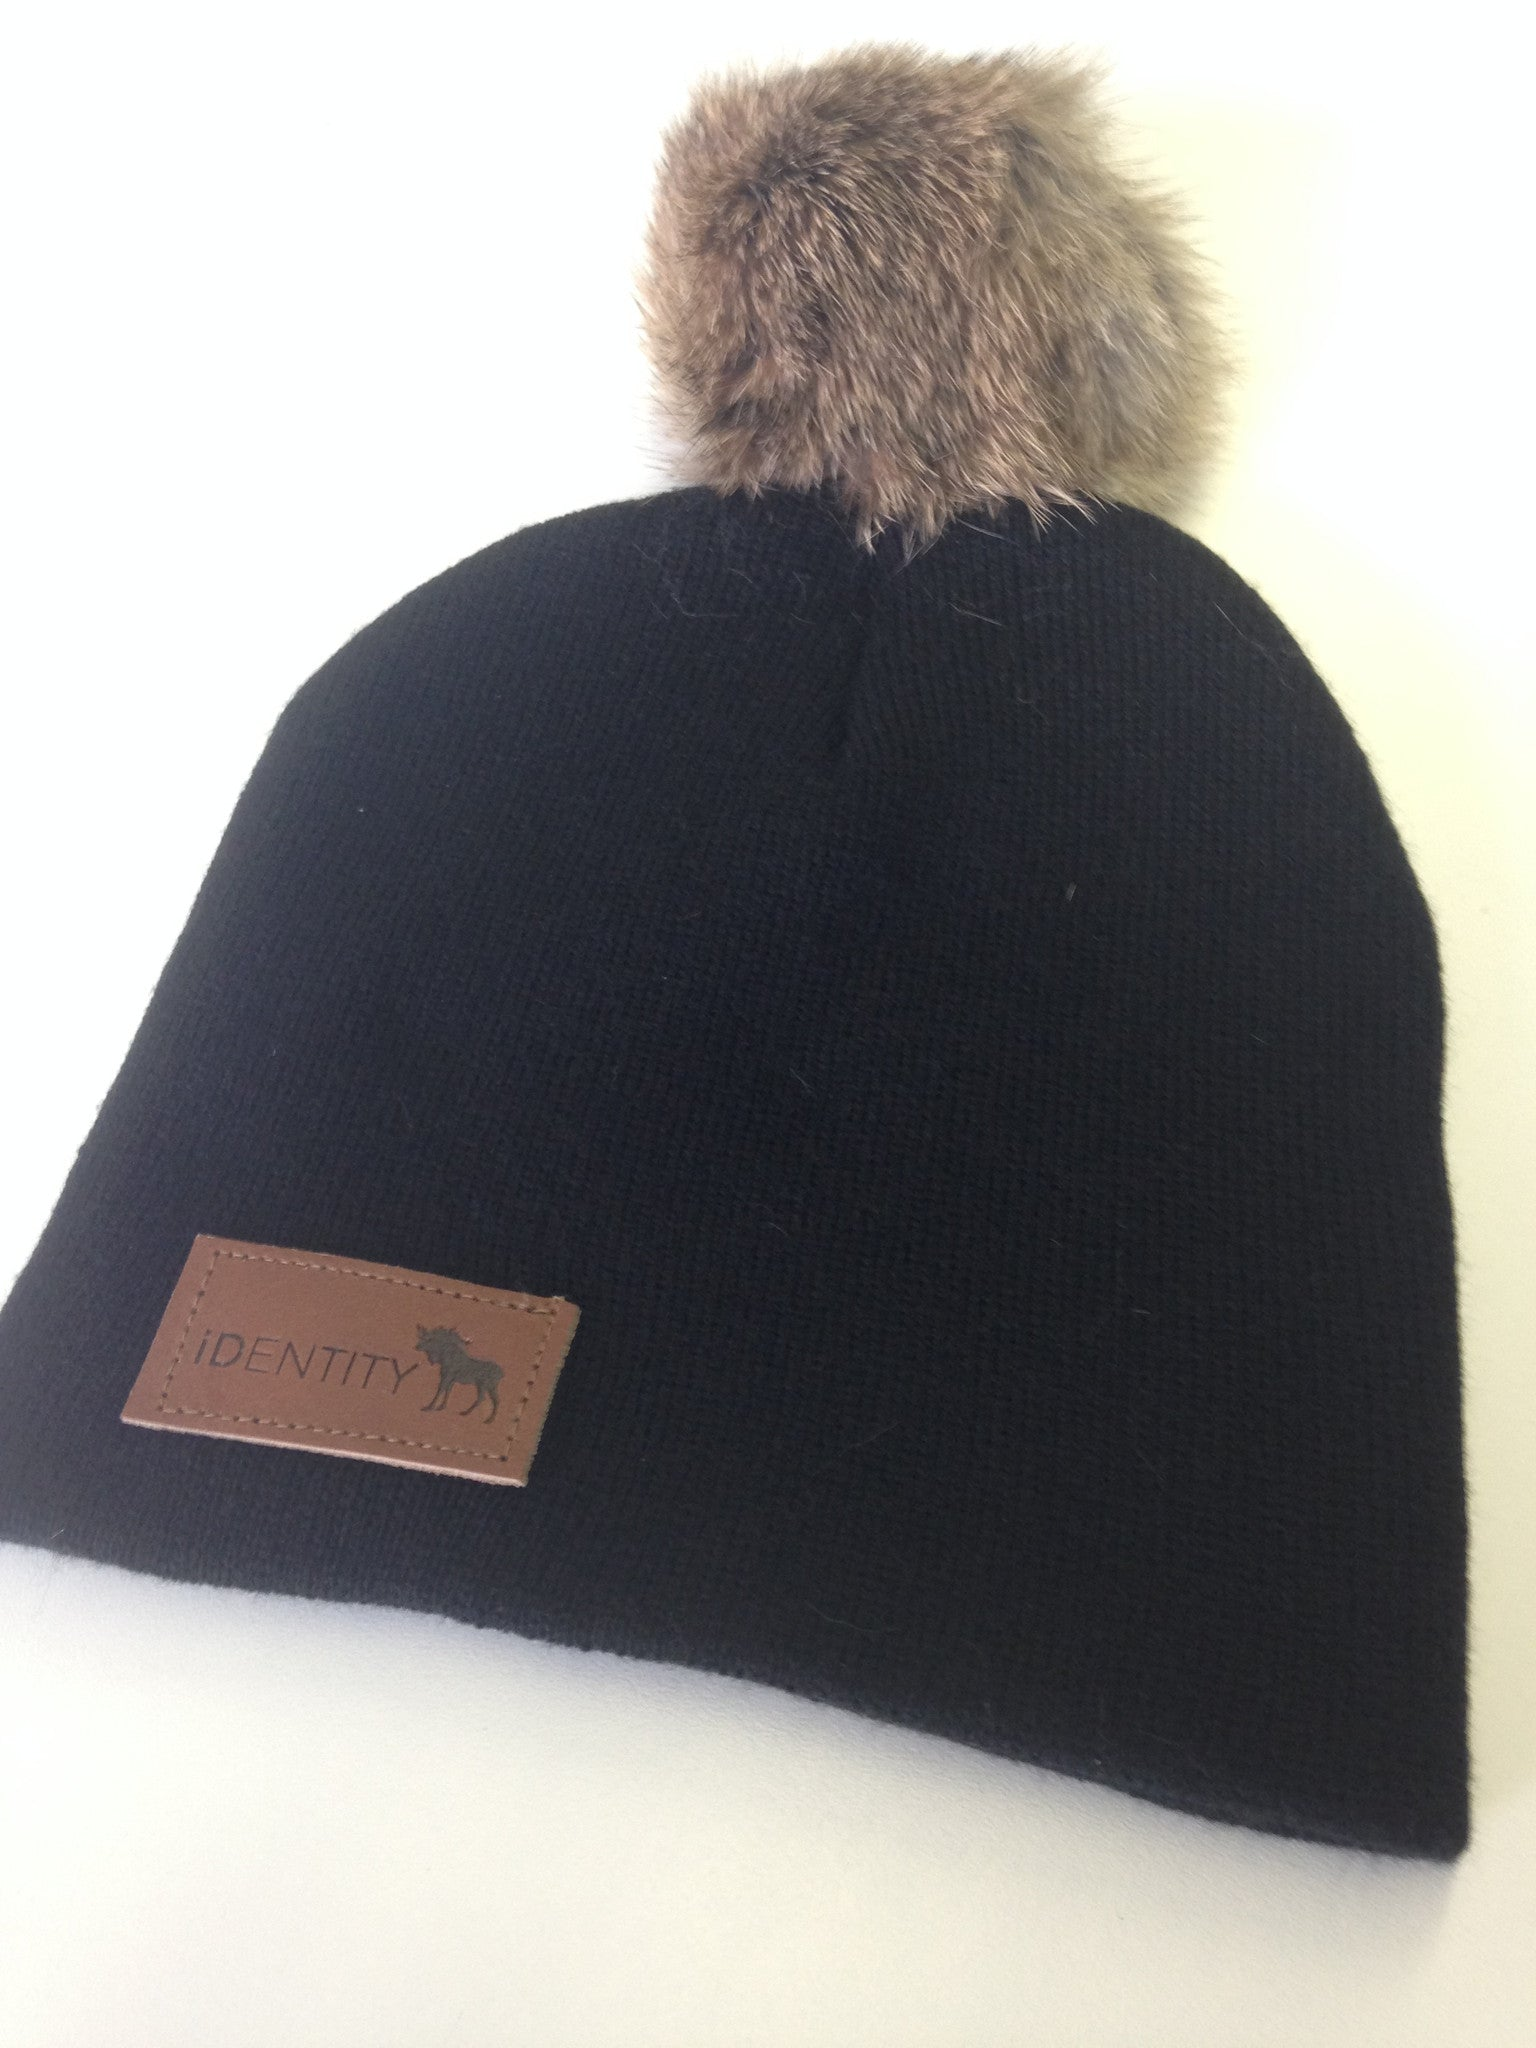 Little Lumberjack Pom-Pom Toque Black